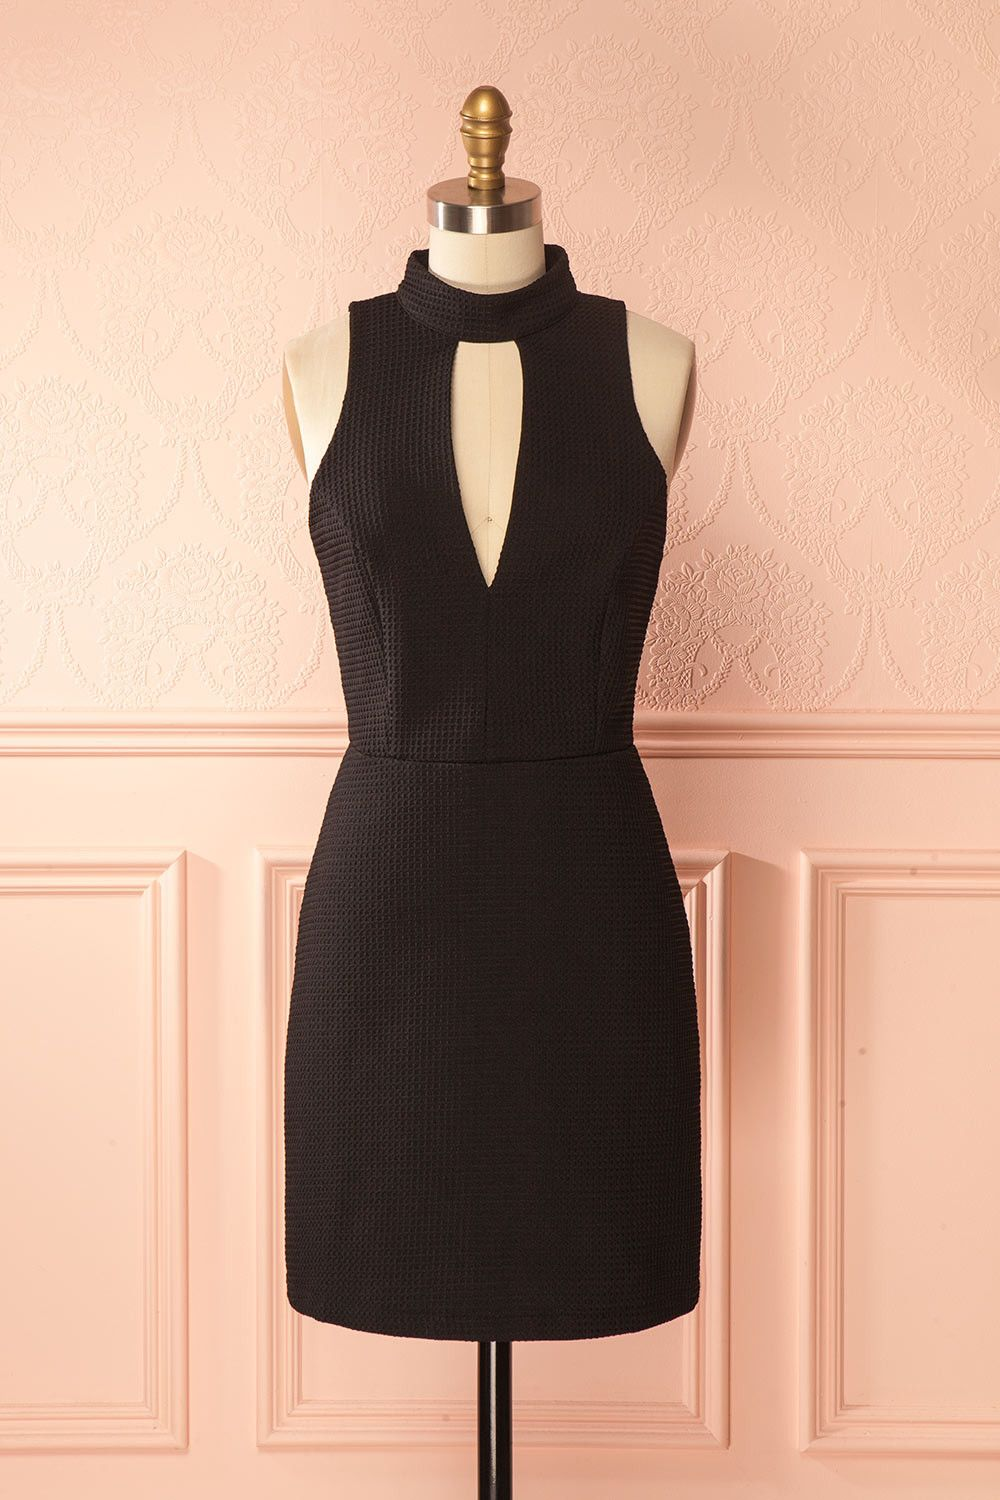 Audhild boutique this little black dress brings us back to